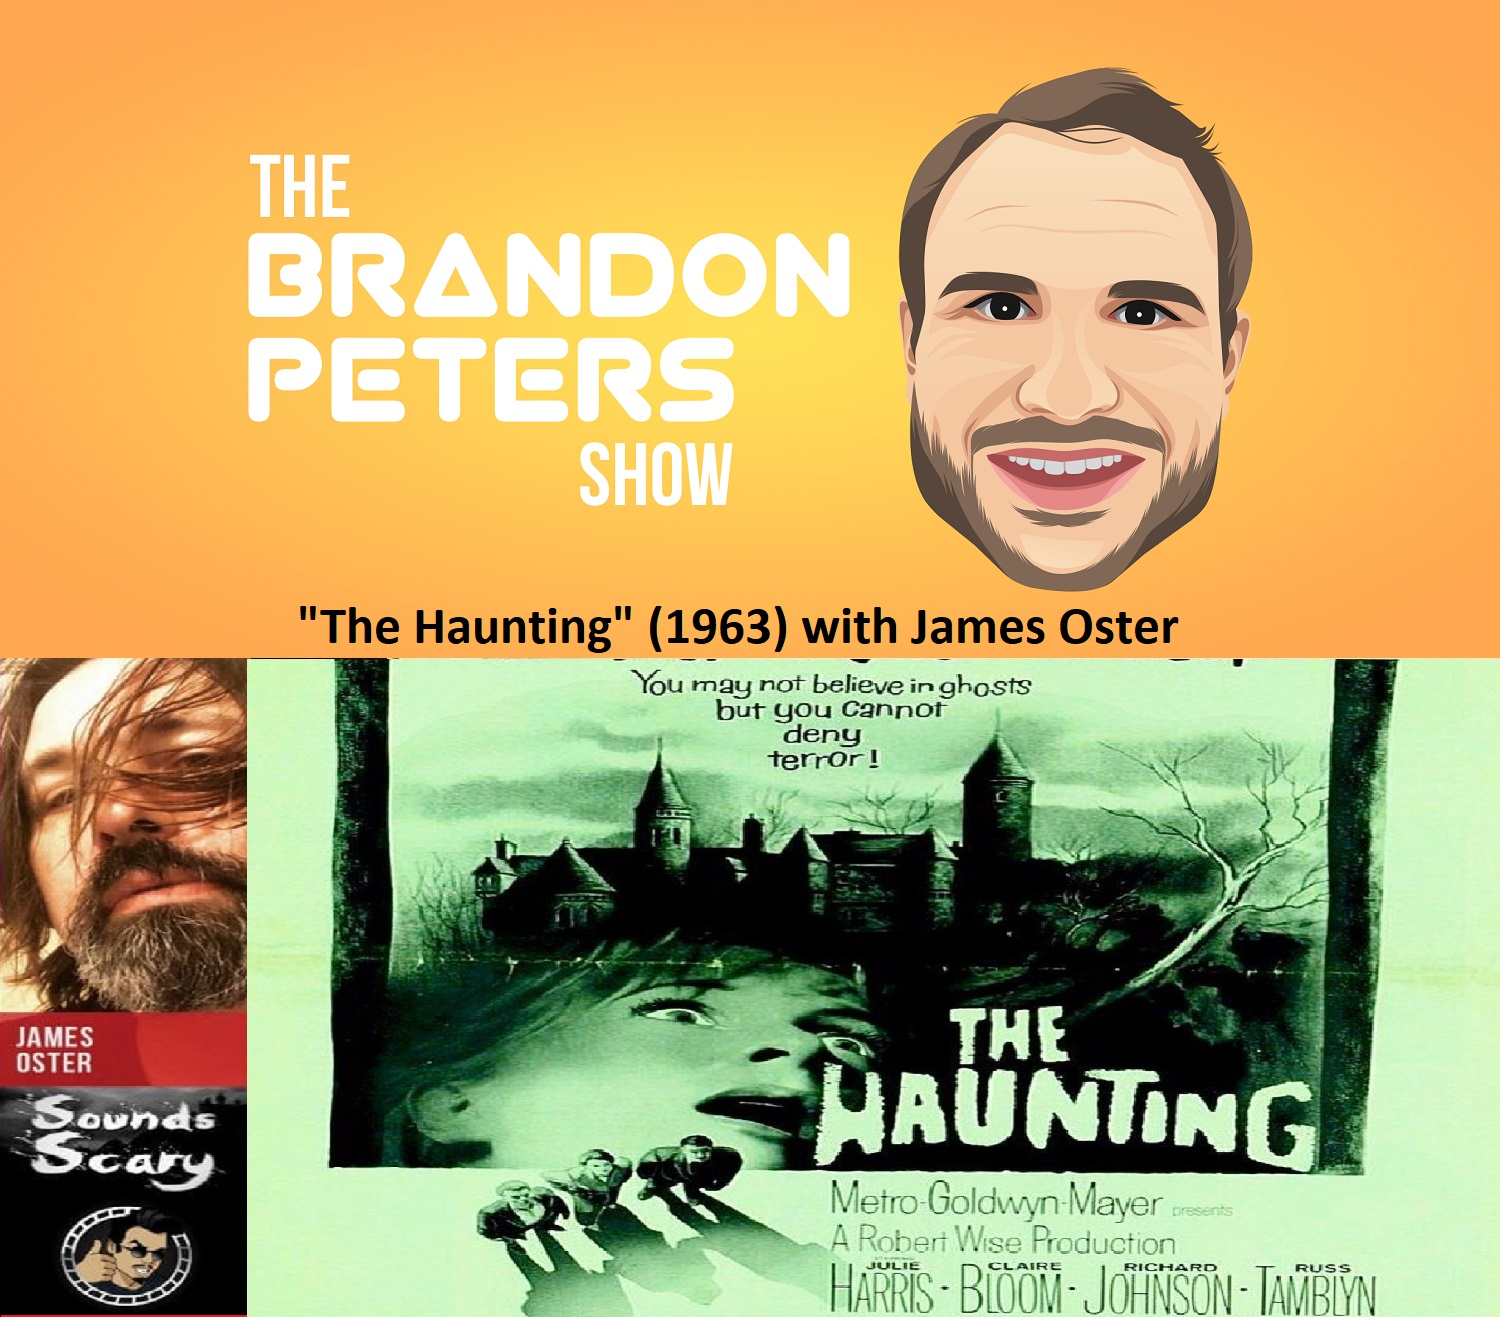 The Haunting (1963) with James Oster